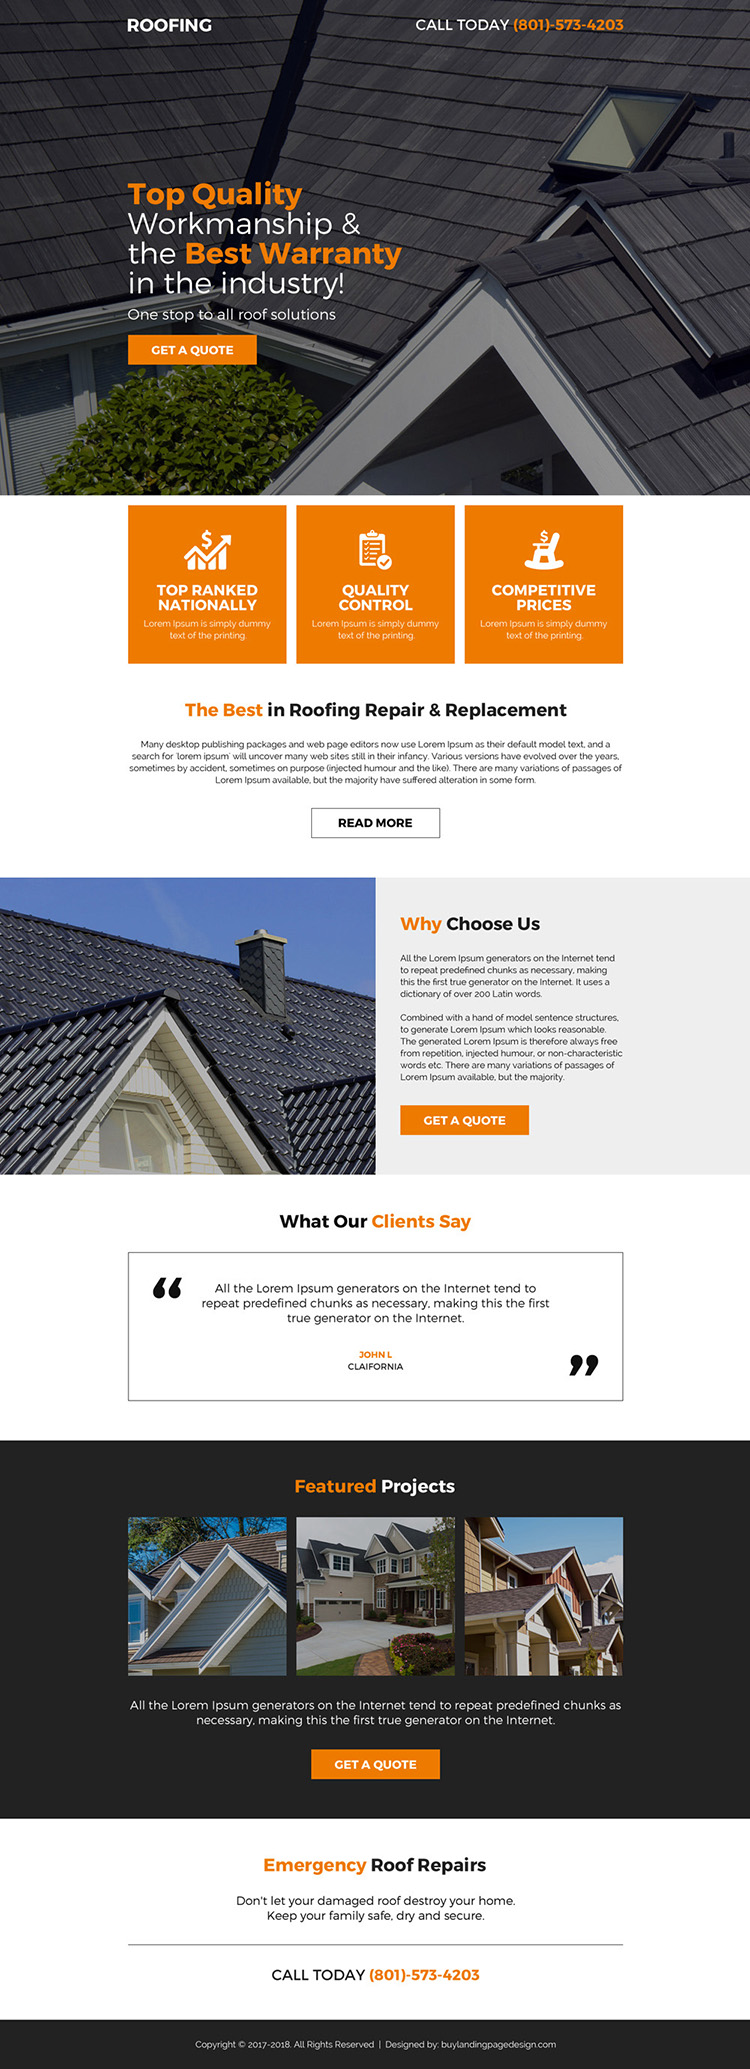 roofing repair and replacement service premium lead capturing landing page